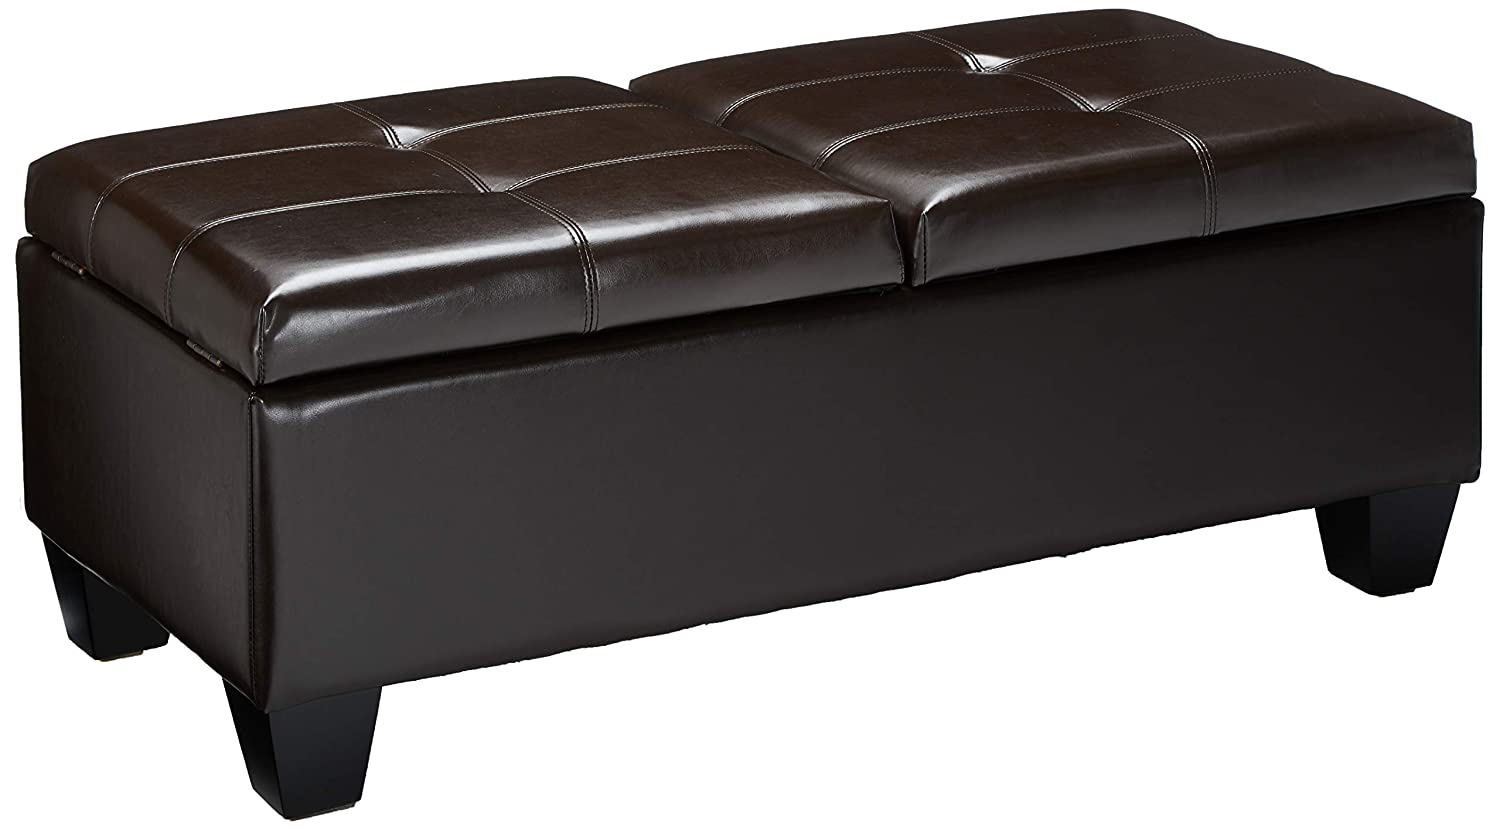 Christopher Knight Home 238354 Murray Double Opening Leather Storage Ottoman, Brown